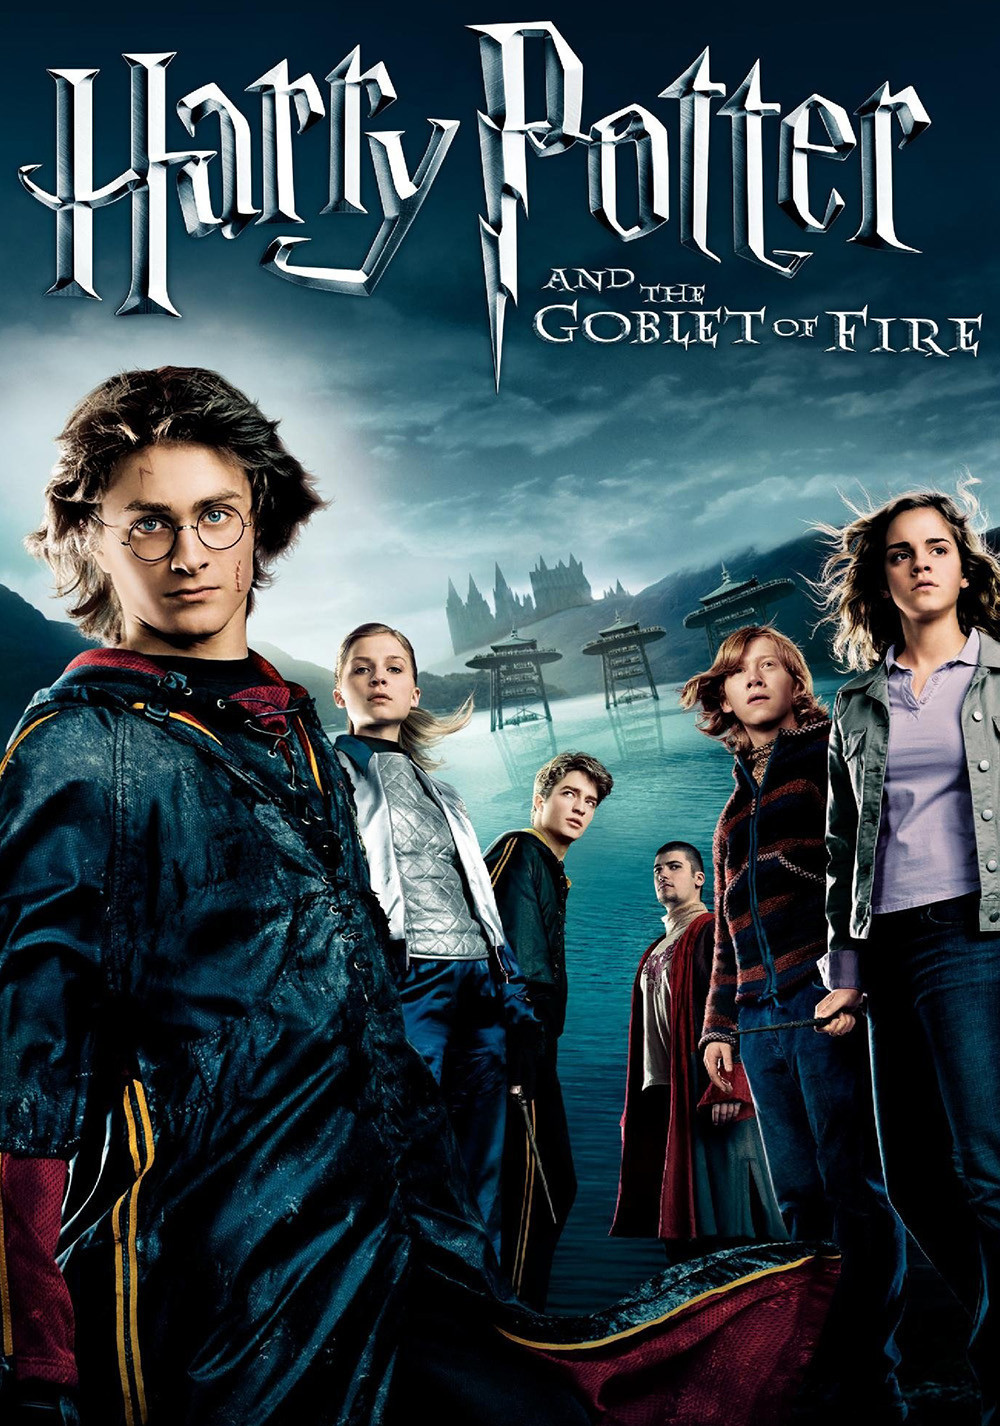 Harry Potter Book Year Released : Potter talk harry and the goblet of fire release